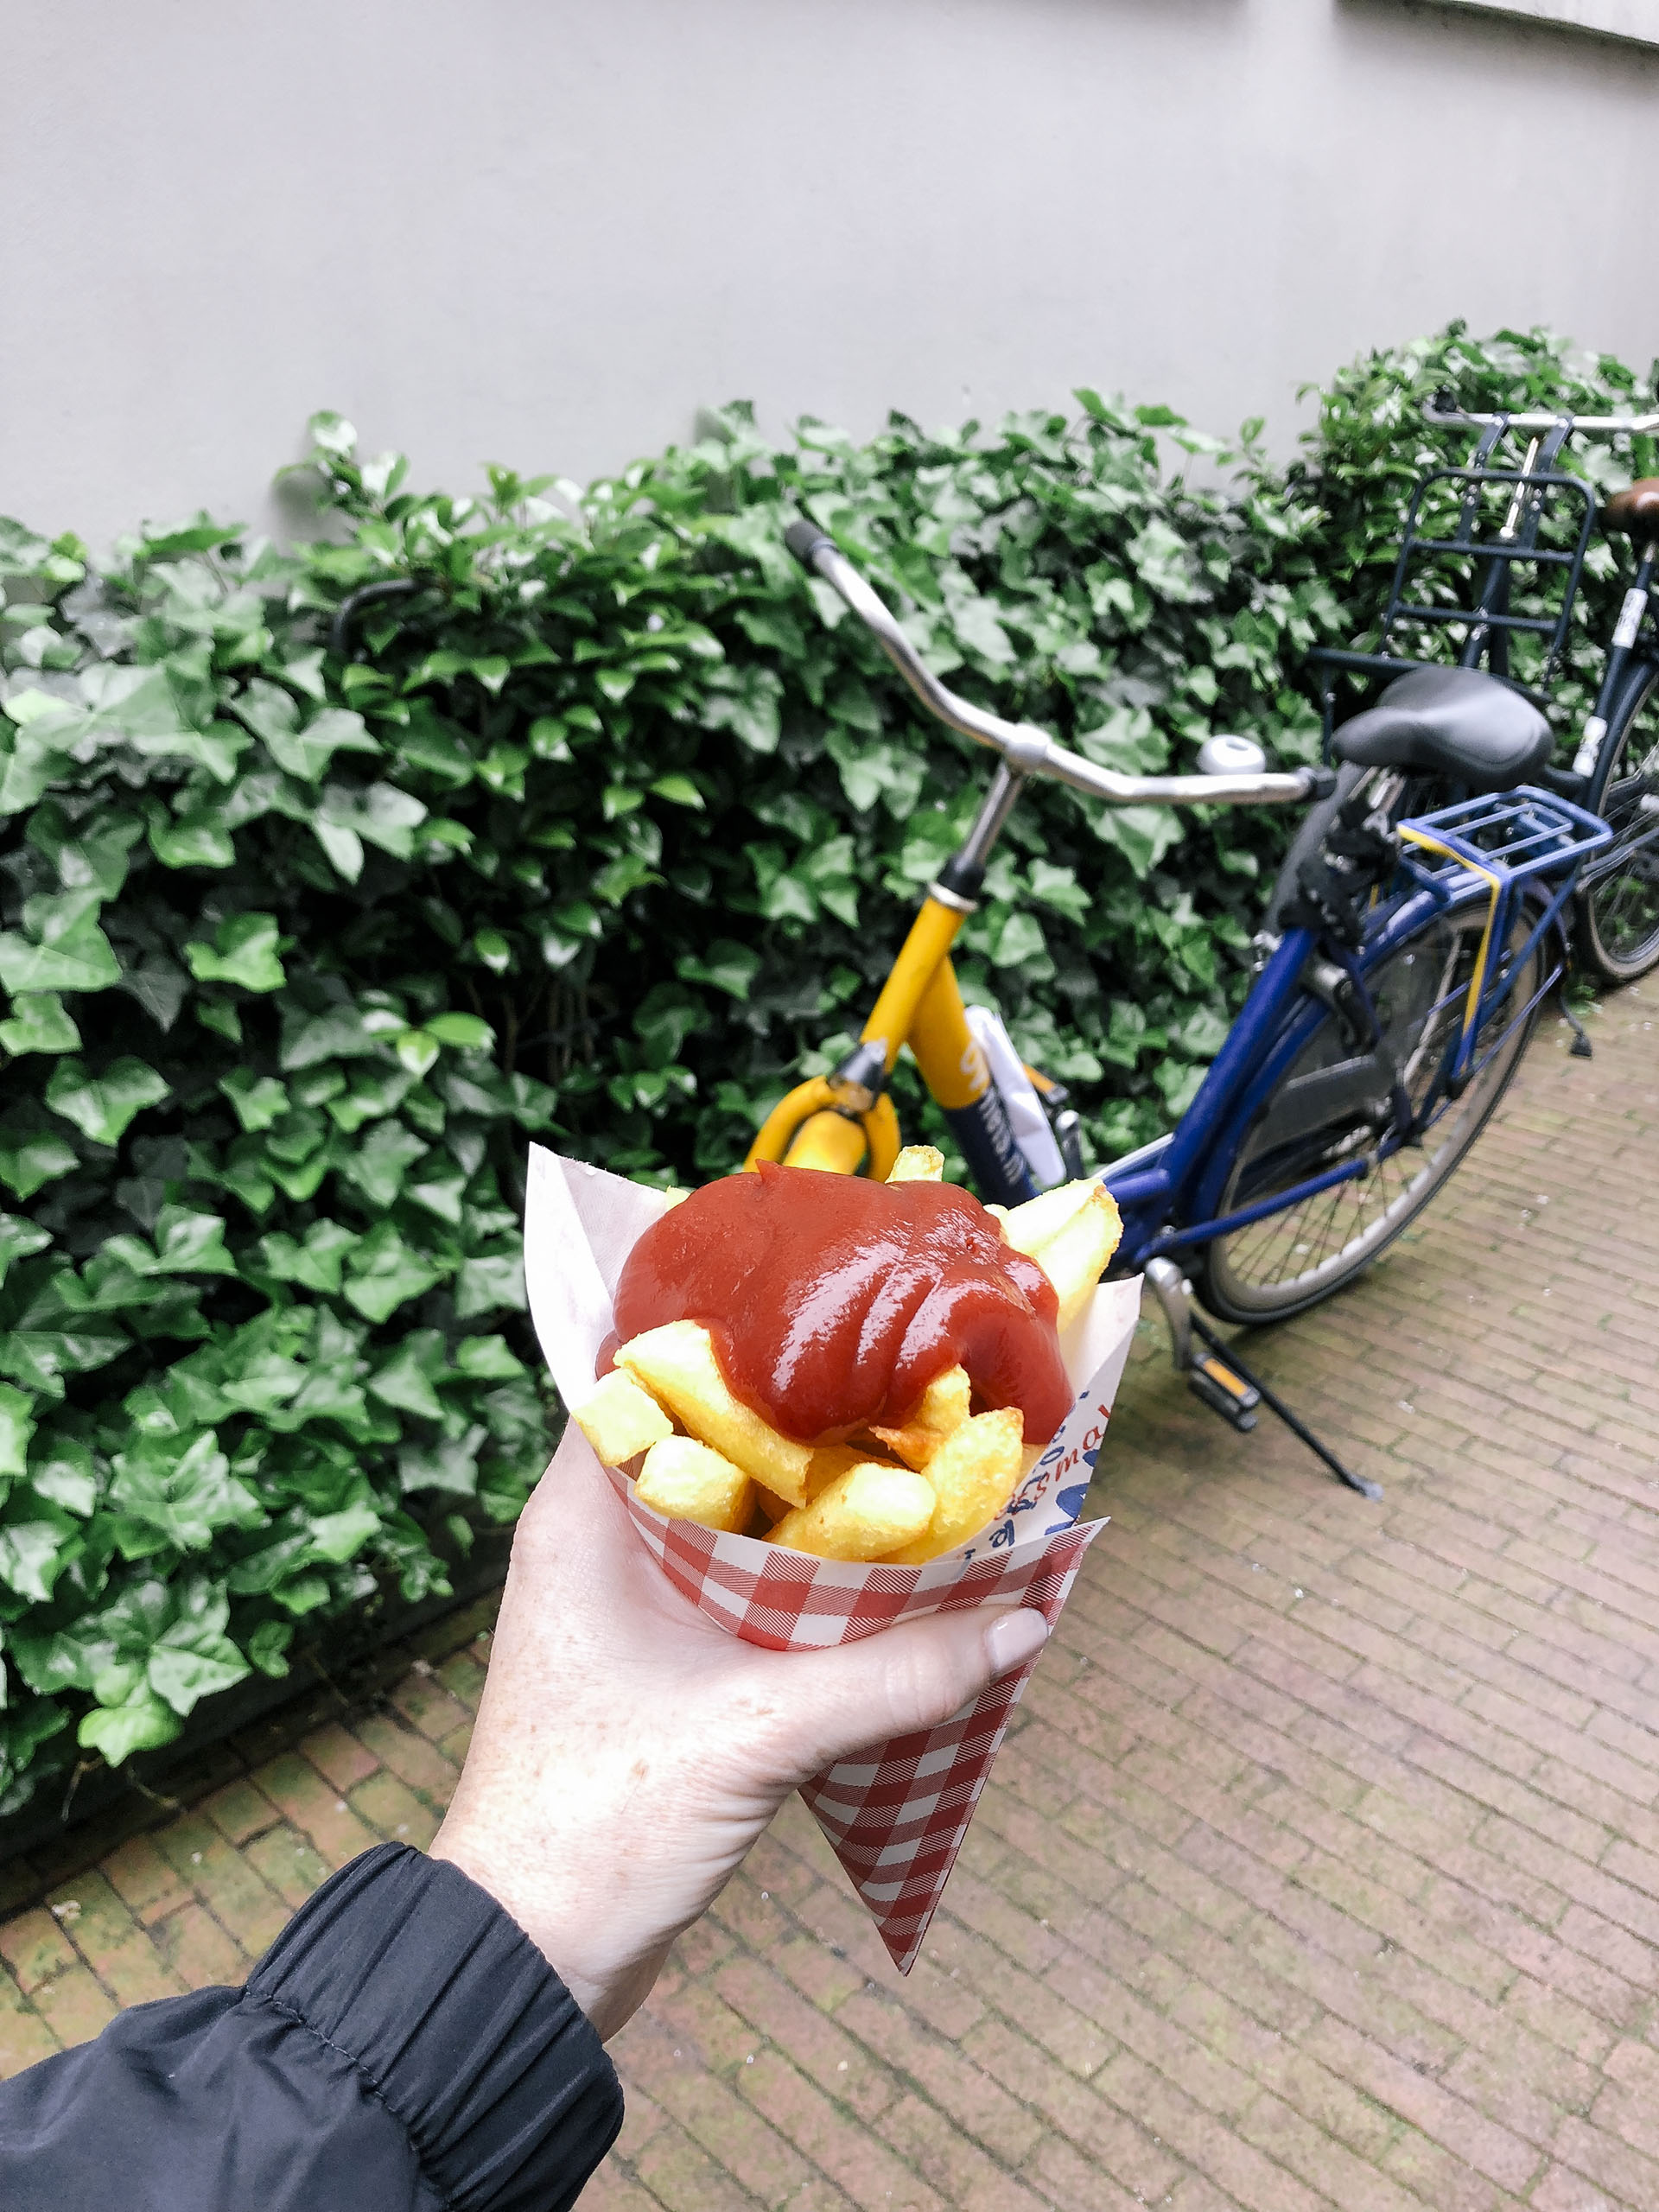 Fries from Vlaams Friteshuis Vleminckx